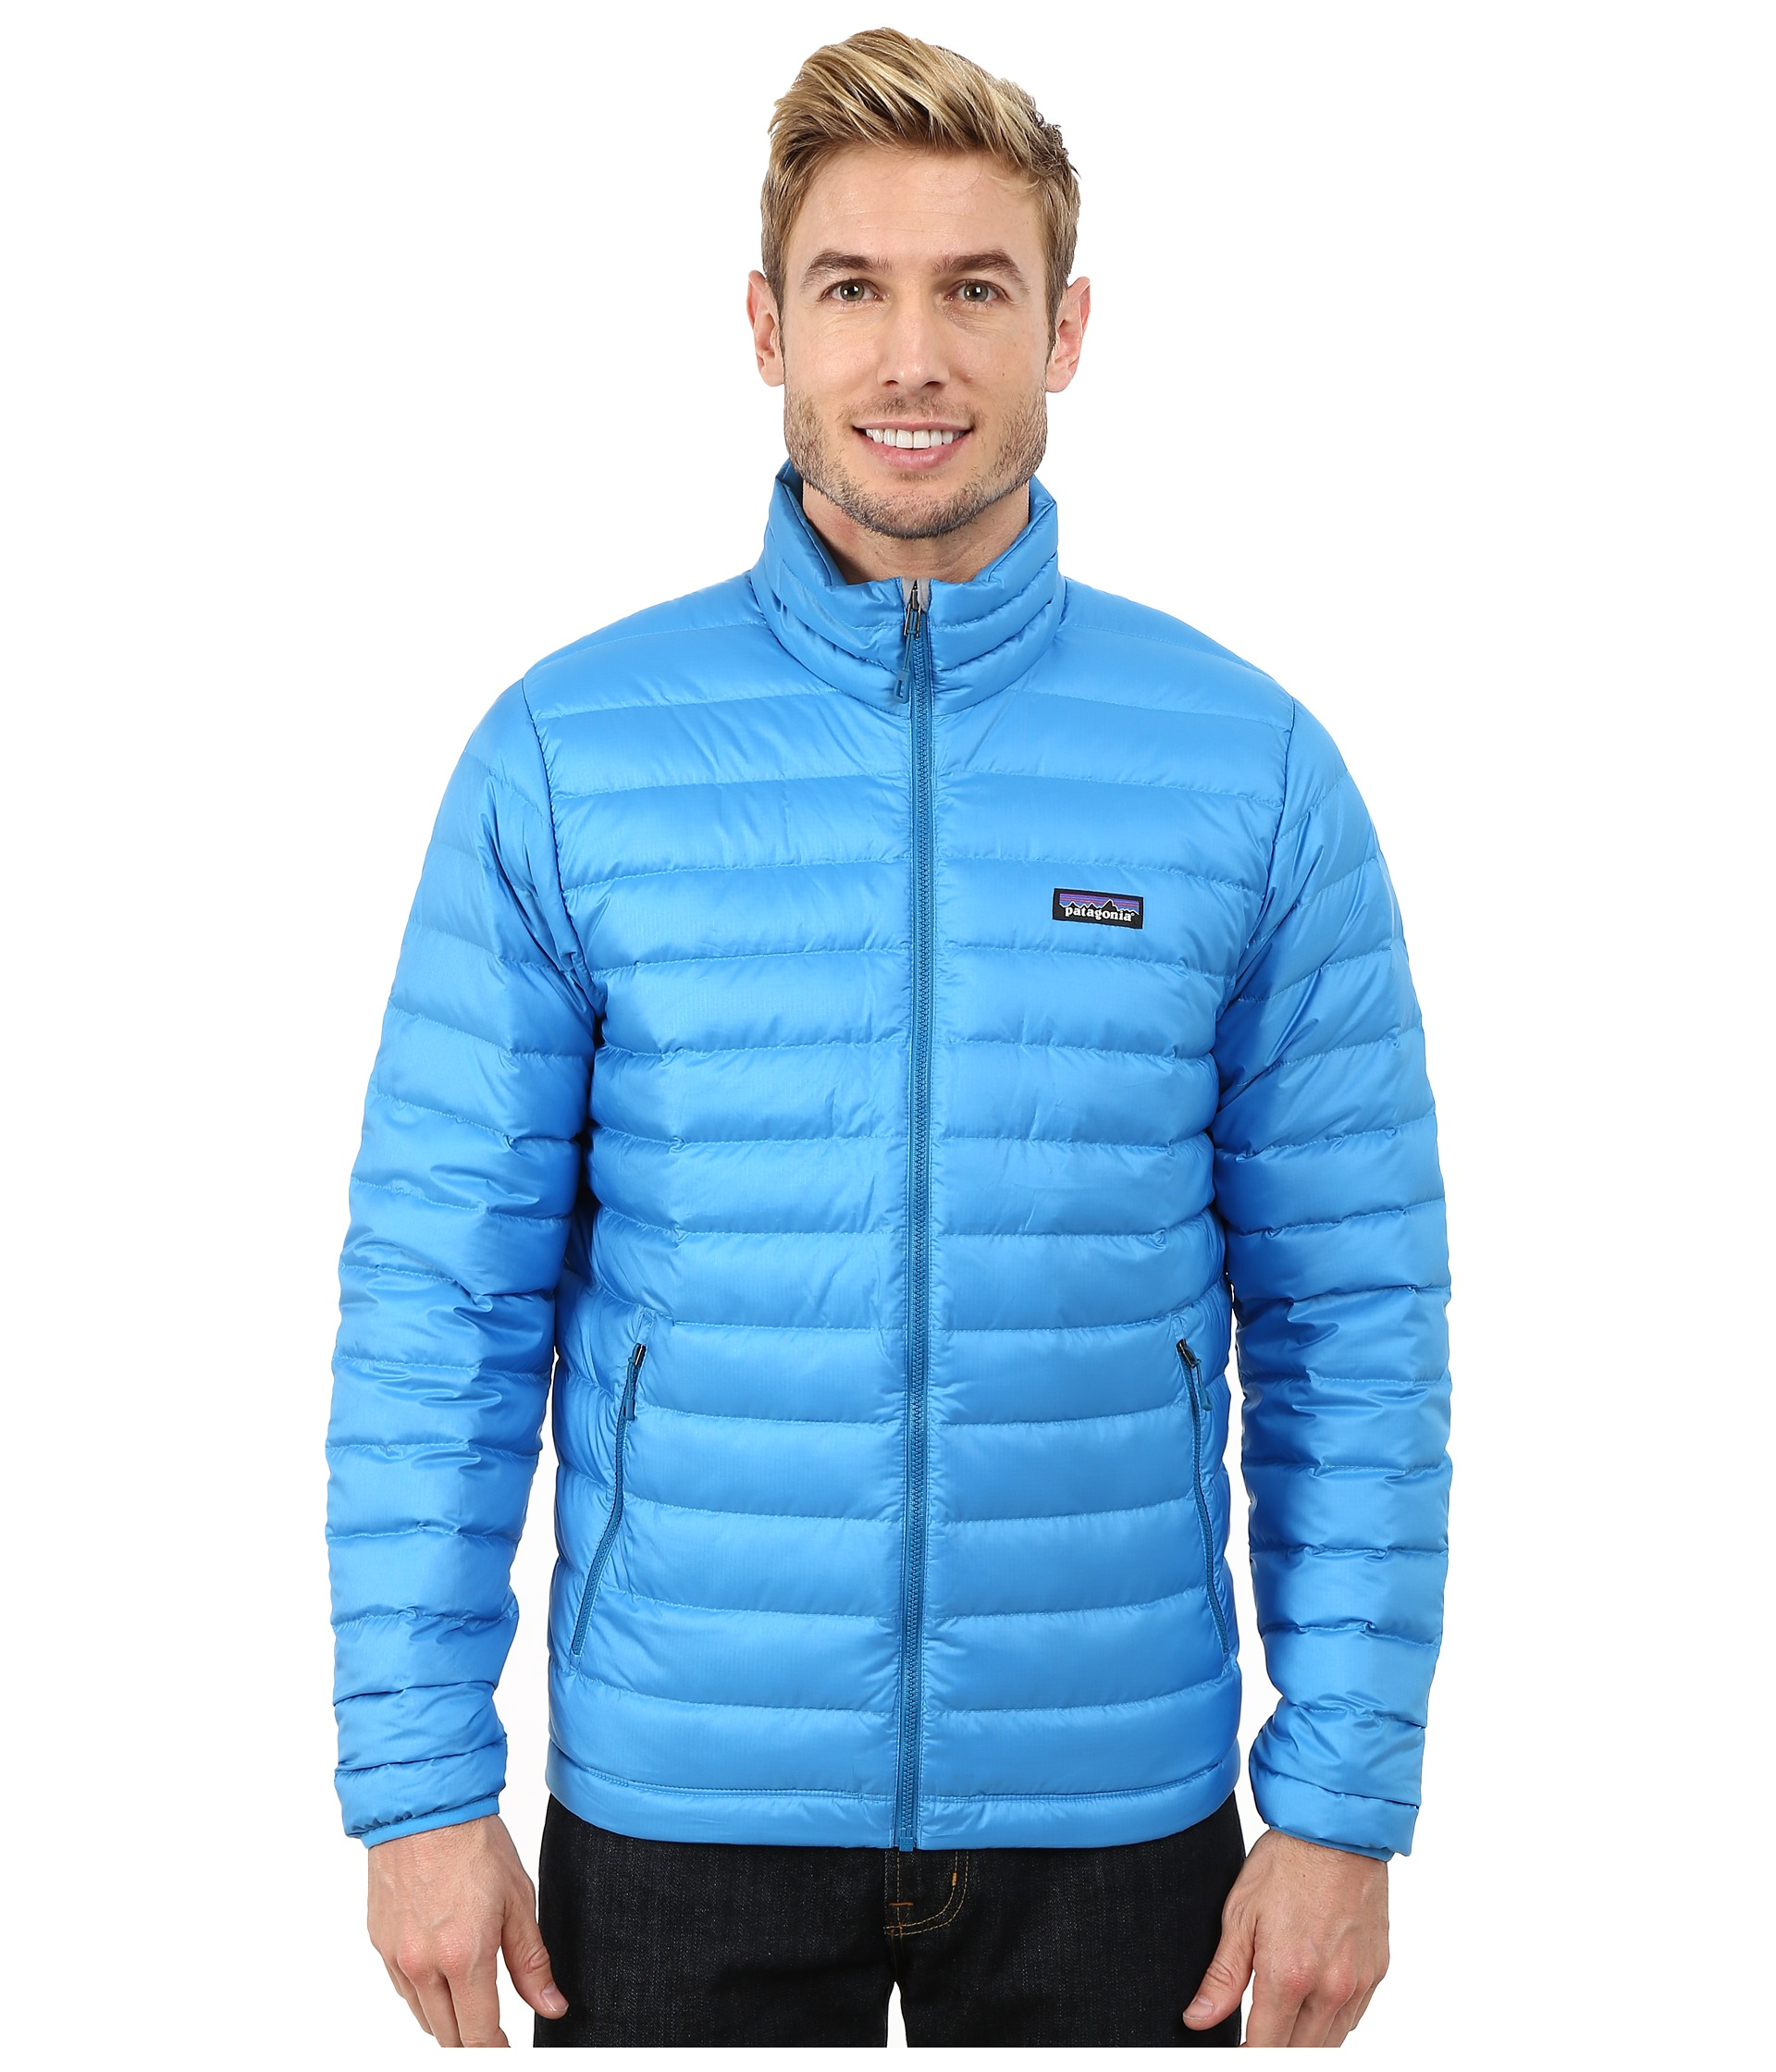 Patagonia Down Sweater Jacket Forge Grey Zappos Com Free